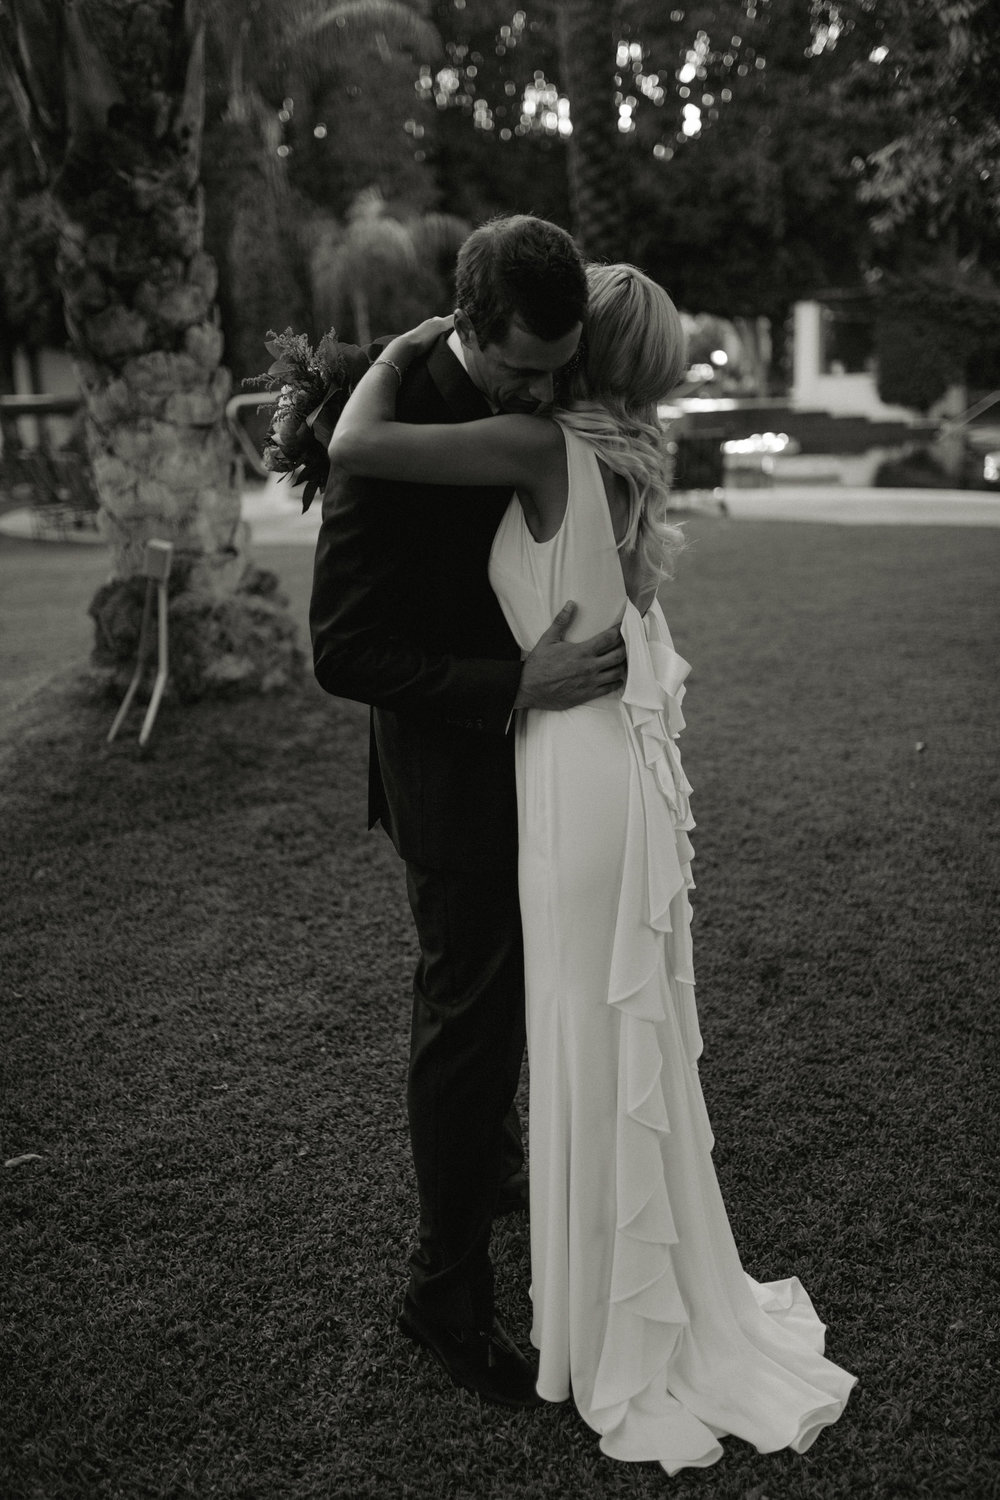 Palm_Springs_CA_wedding_alex_maxwell-63.jpg